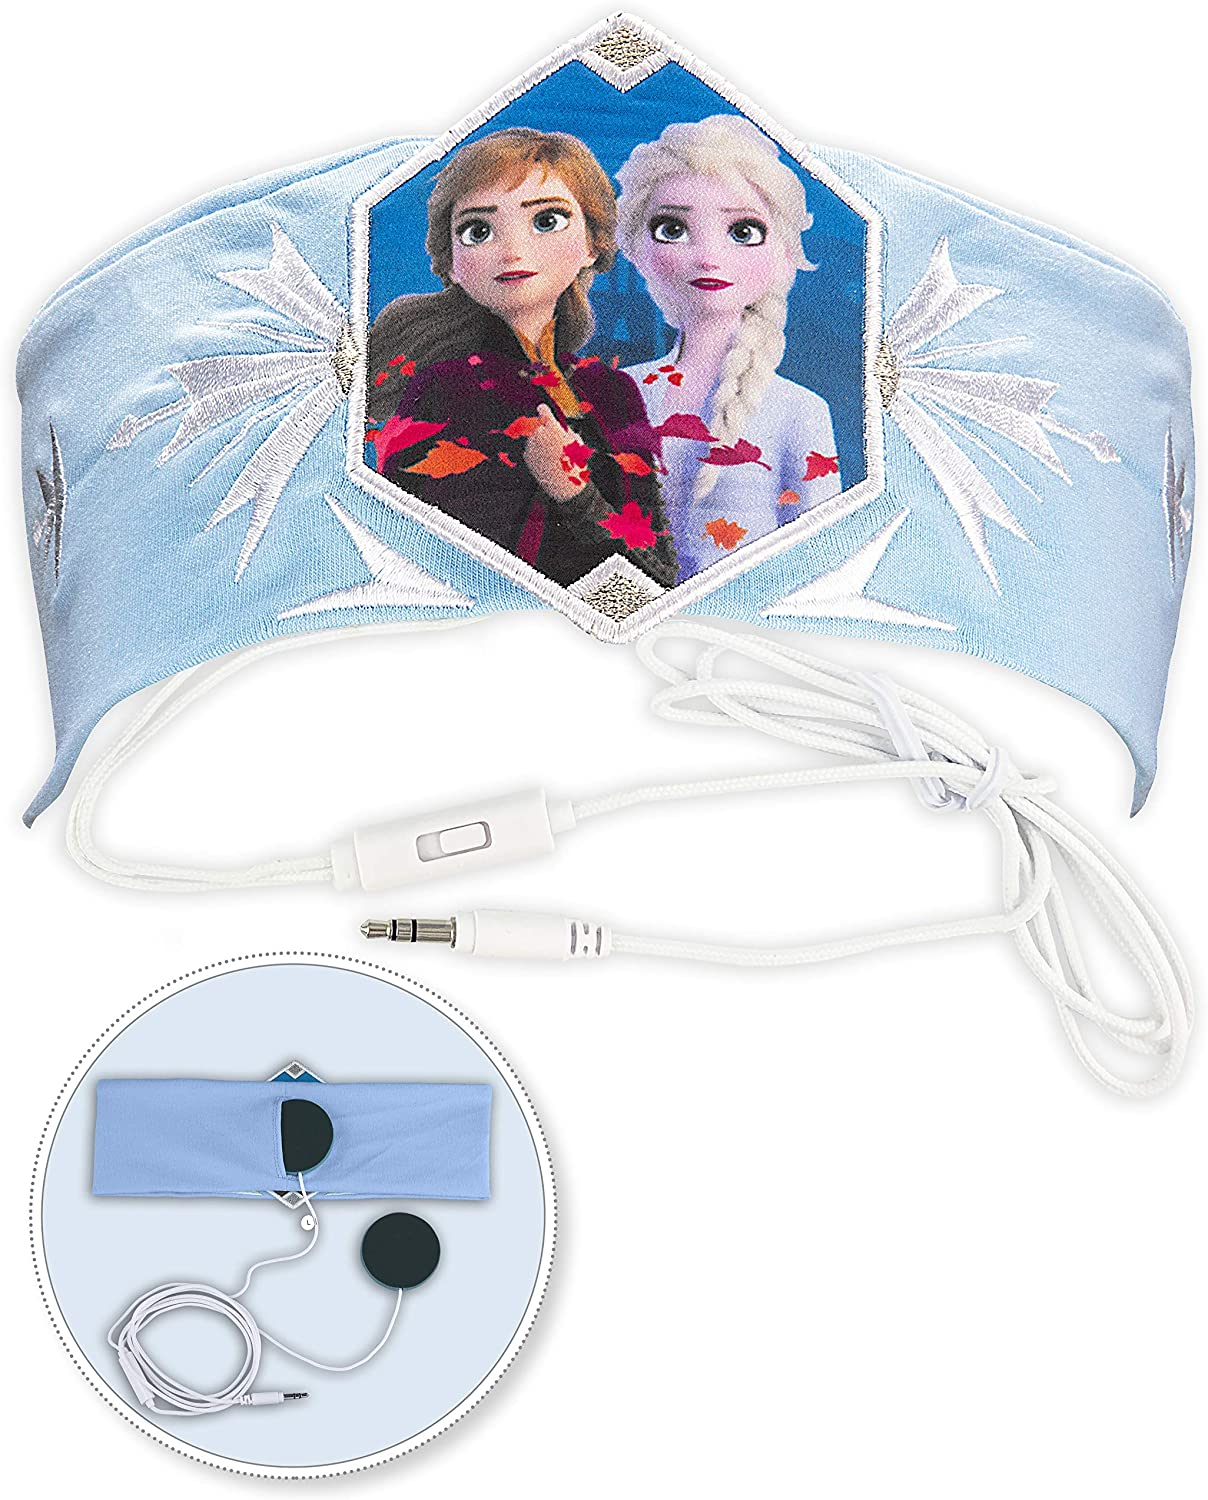 Frozen 2 Kids Headband Headphones Volume Limiting Switch Thin Speakers & Comfortable Soft Cotton Headband Perfect for Children's Earphones for School Home and Travel (Standard Packaging)